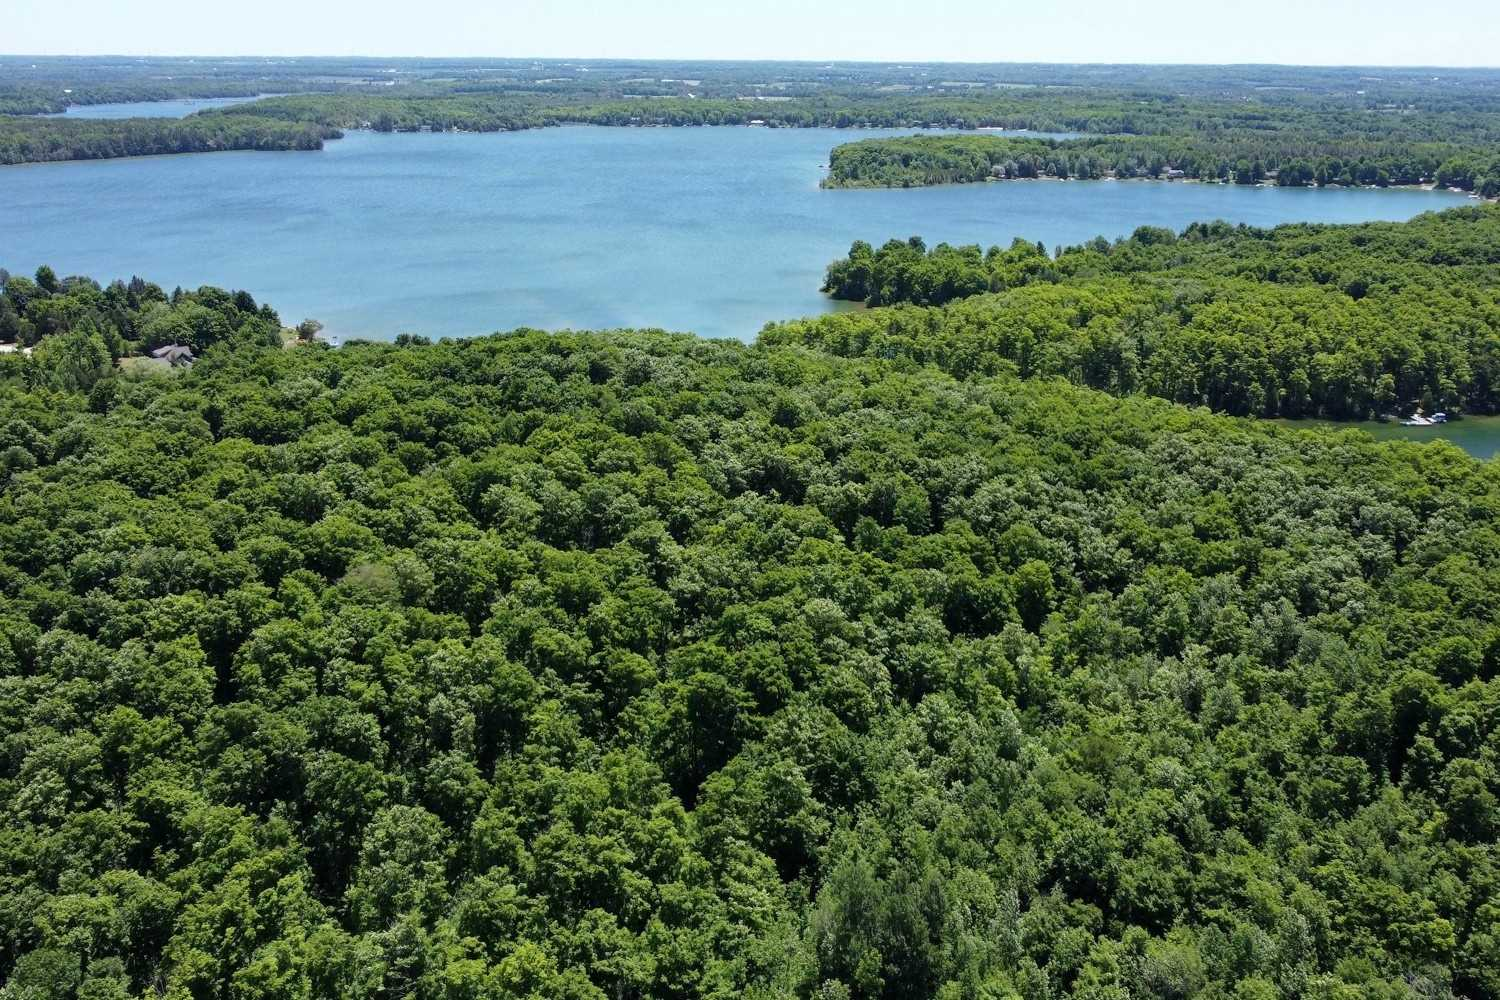 92 Acres Of Mixed Hardwood, Pine Forest And Fields And Get This, 1800 Feet Of Lake Frontage On Lake Eugenia, One Of The Most Popular Inland Lakes In Southern Ontario! Build Your House/Cottage/Chalet And Of Course A Dock At The Lake. There Is Even A Century Old Post And Beam Drive Shed. Only 1.5 Hours To K/W, Waterloo/Guelph Or Pearson.